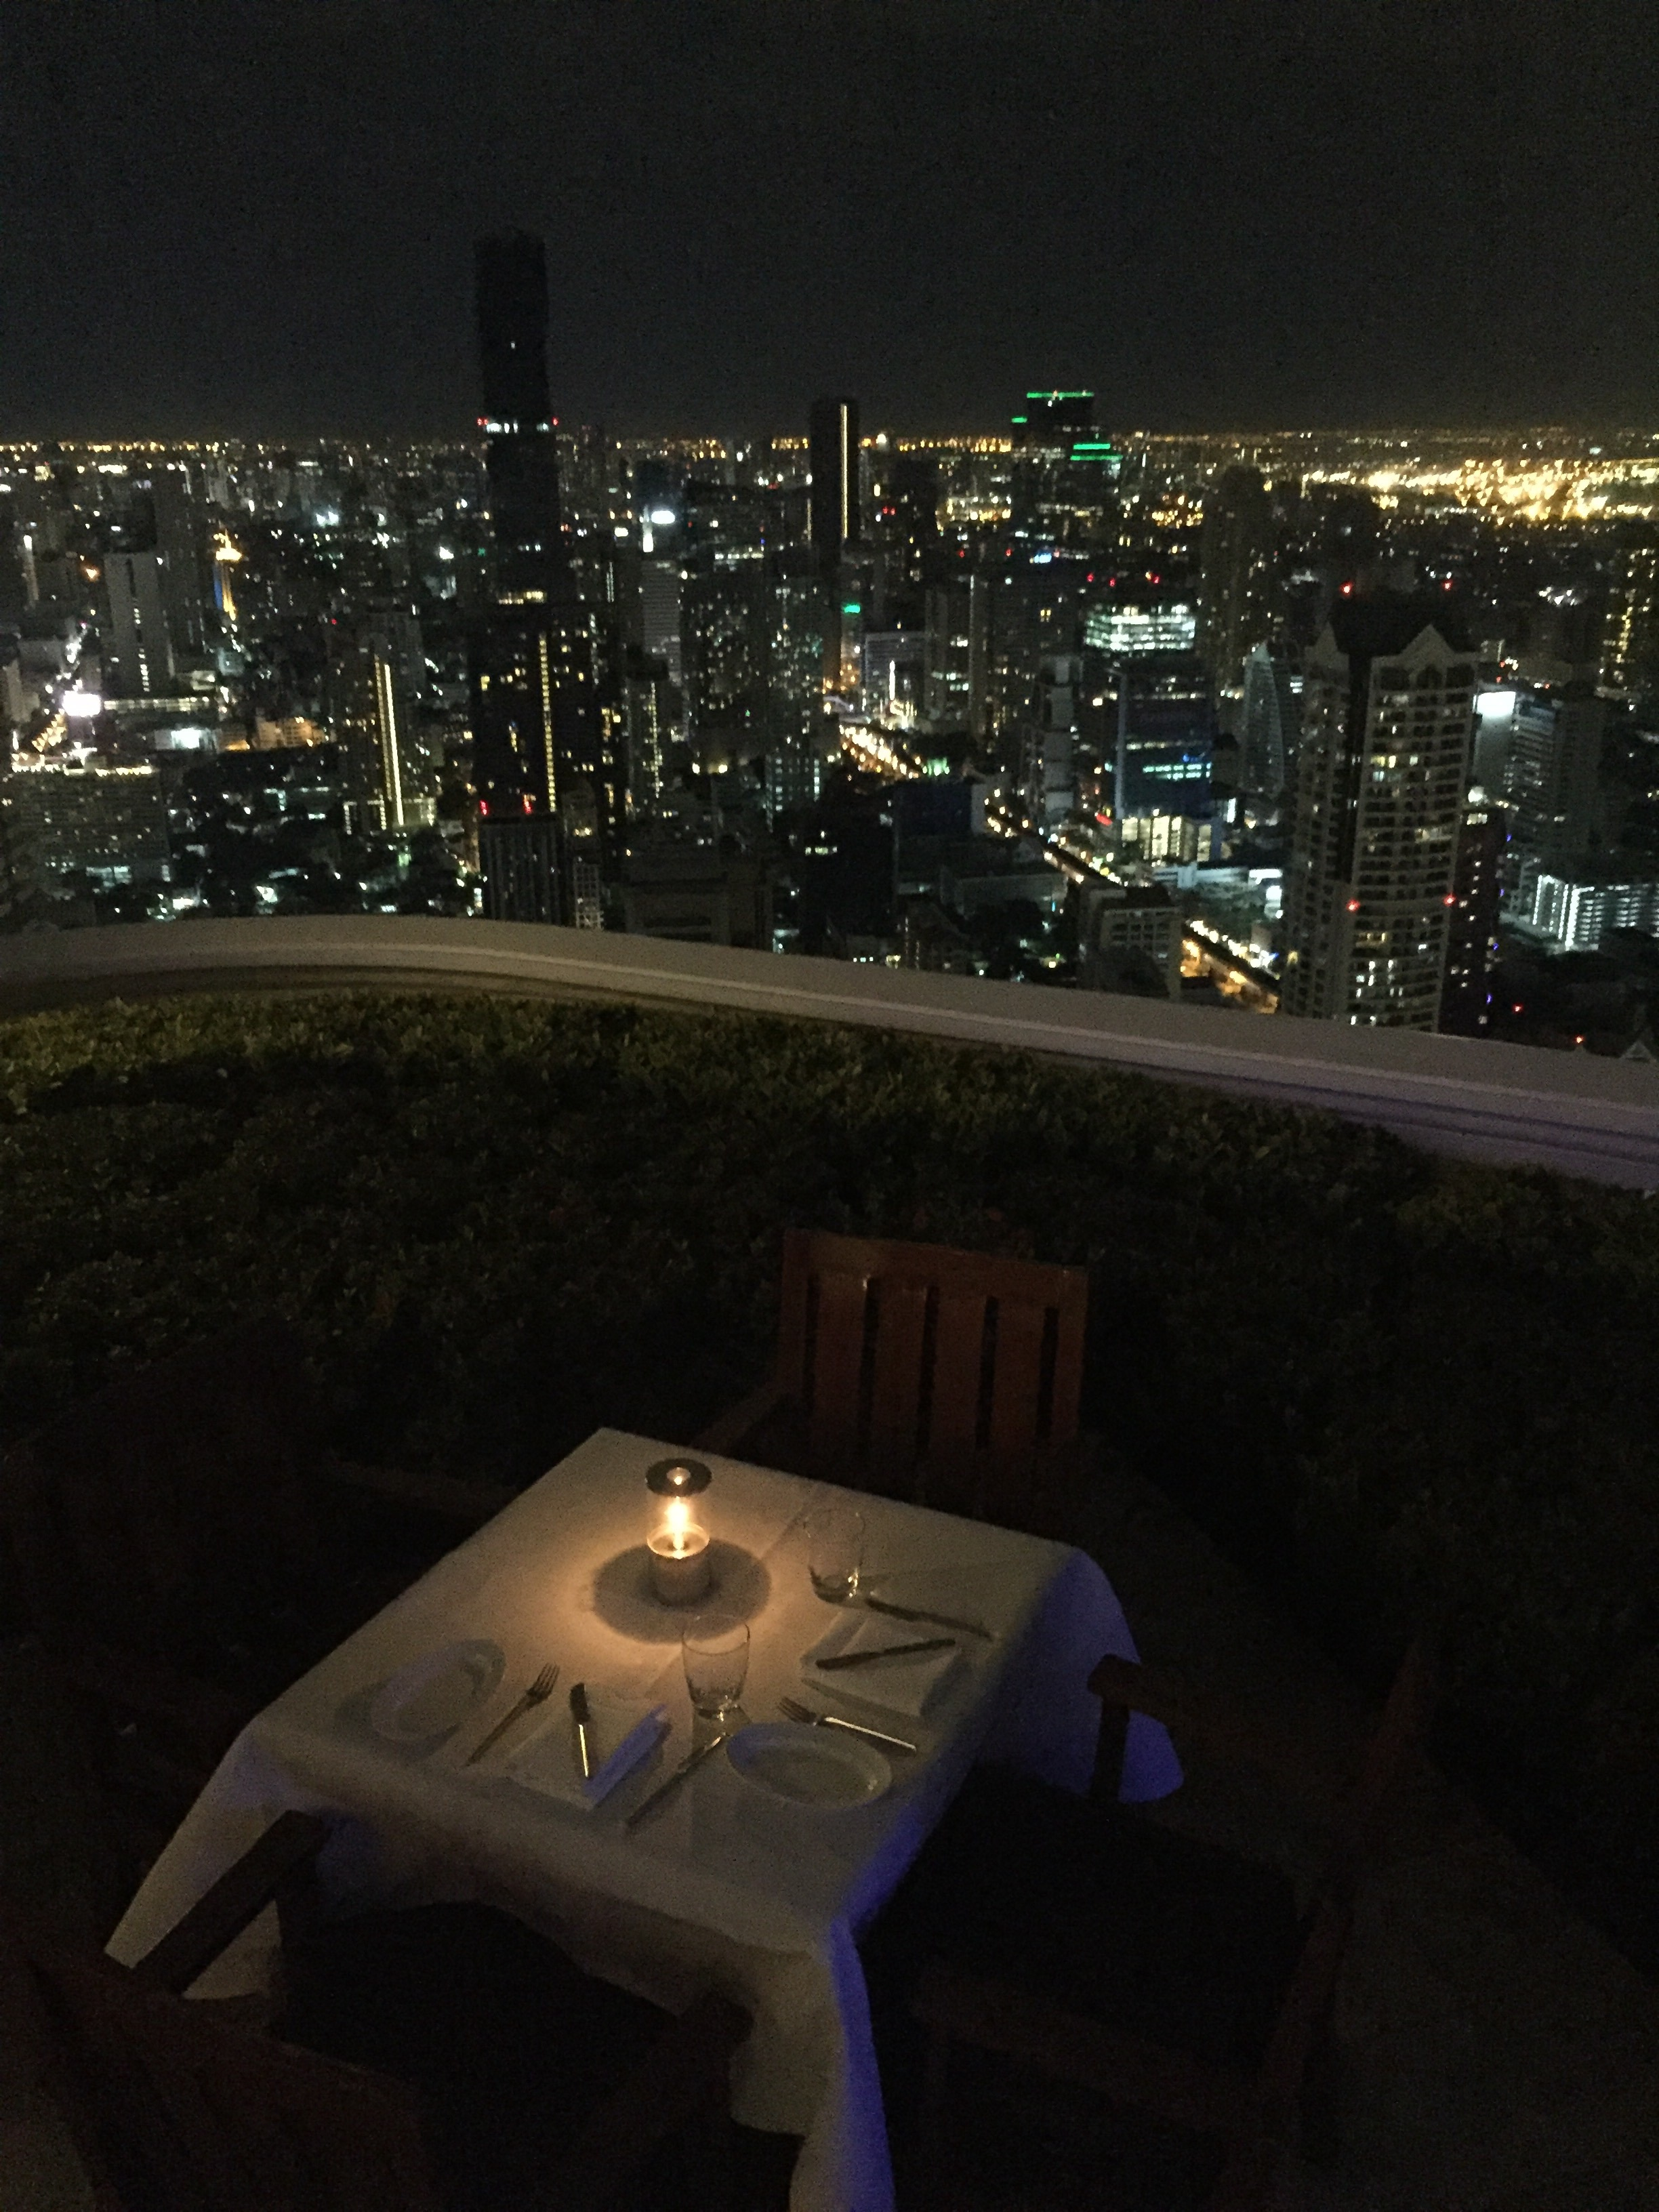 You can have a dinner in a best place of Bangkok